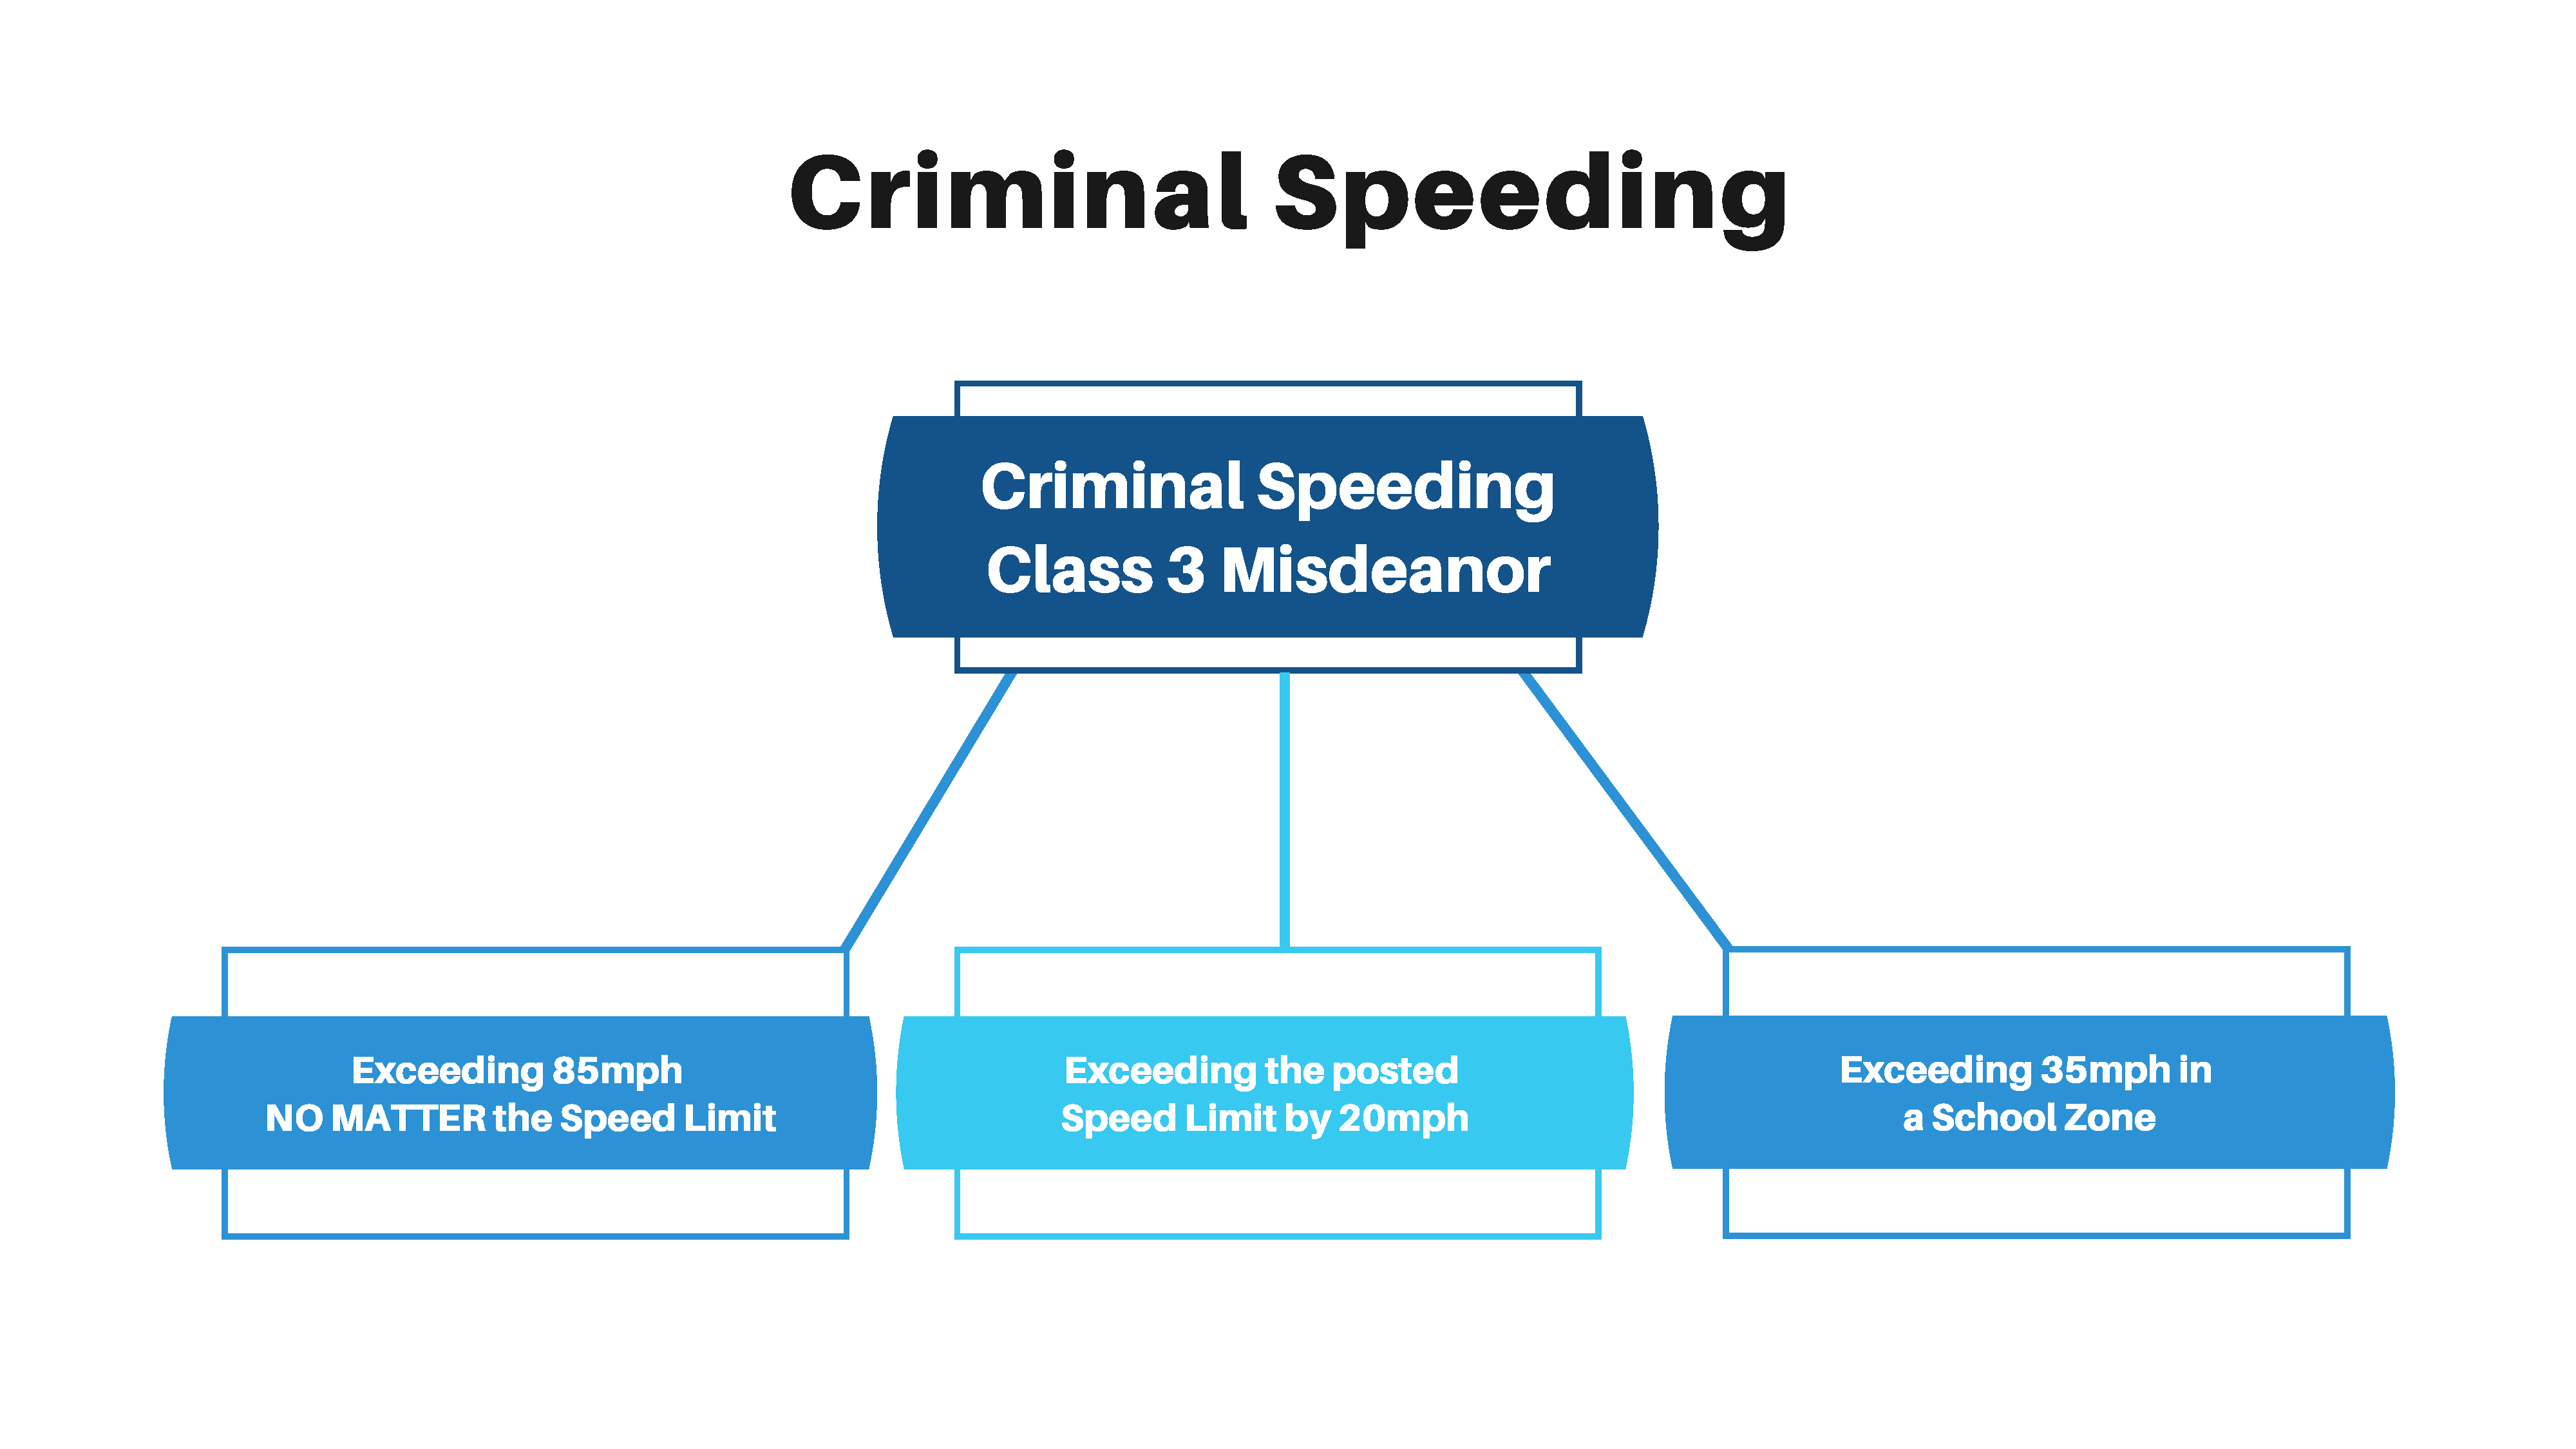 Criminal Speeding Chandler chart